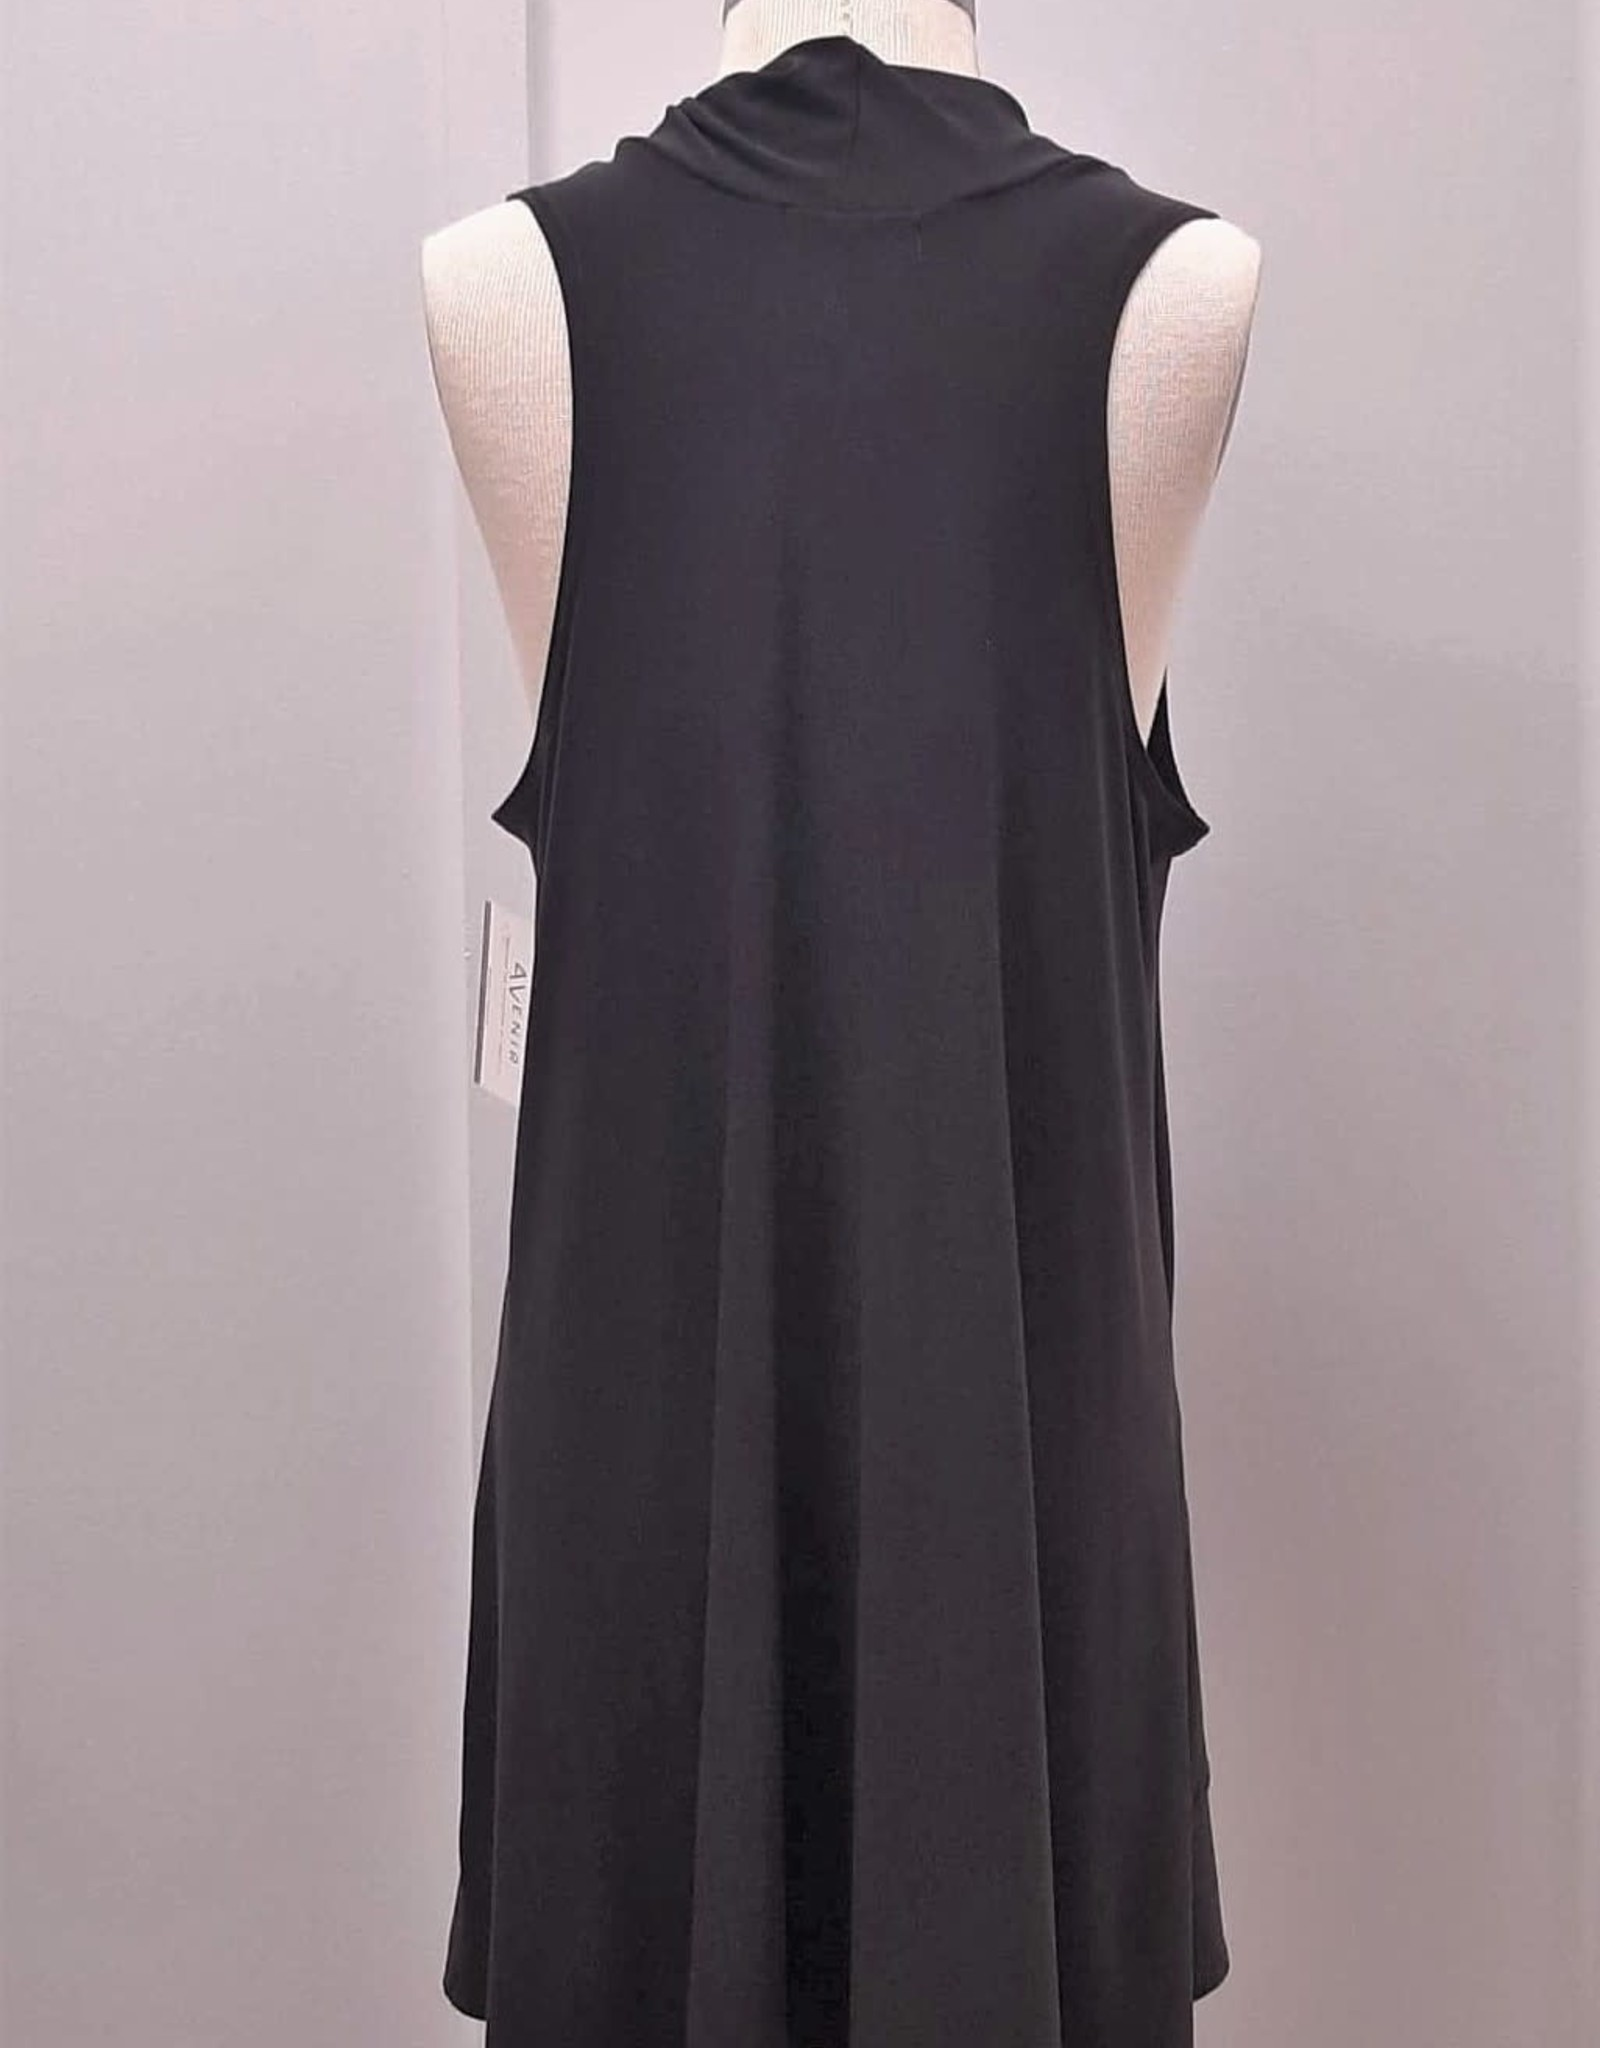 Sympli Cowl Tank - Size 12 (Consignment)